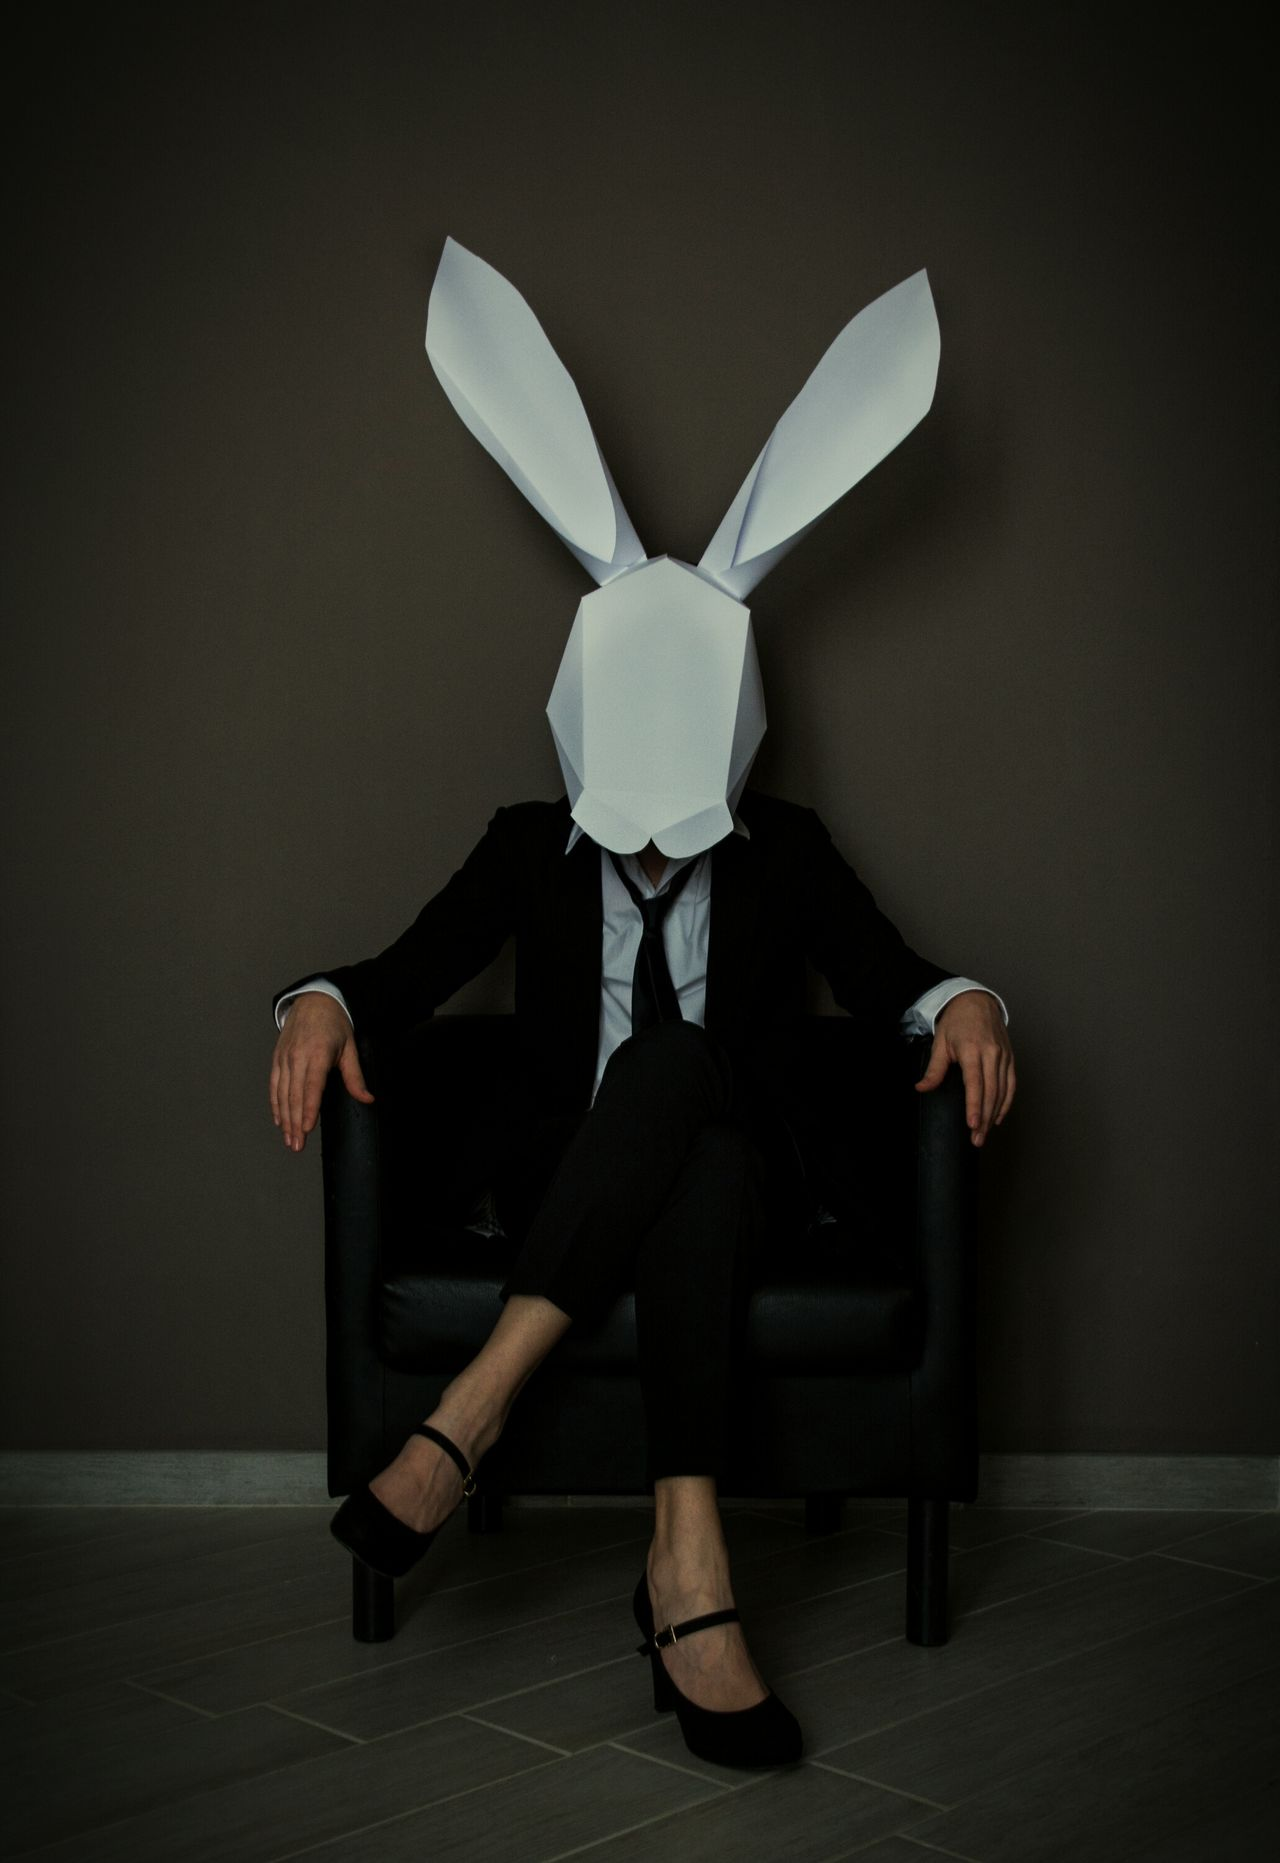 Well-dressed One Person Moody Mask Rabbit Faceless Portrait Faceless Young Woman Sitting Dark Photography Conceptual Photography  Paper Mask Suit & Tie Heels Dark Portrait Surreal